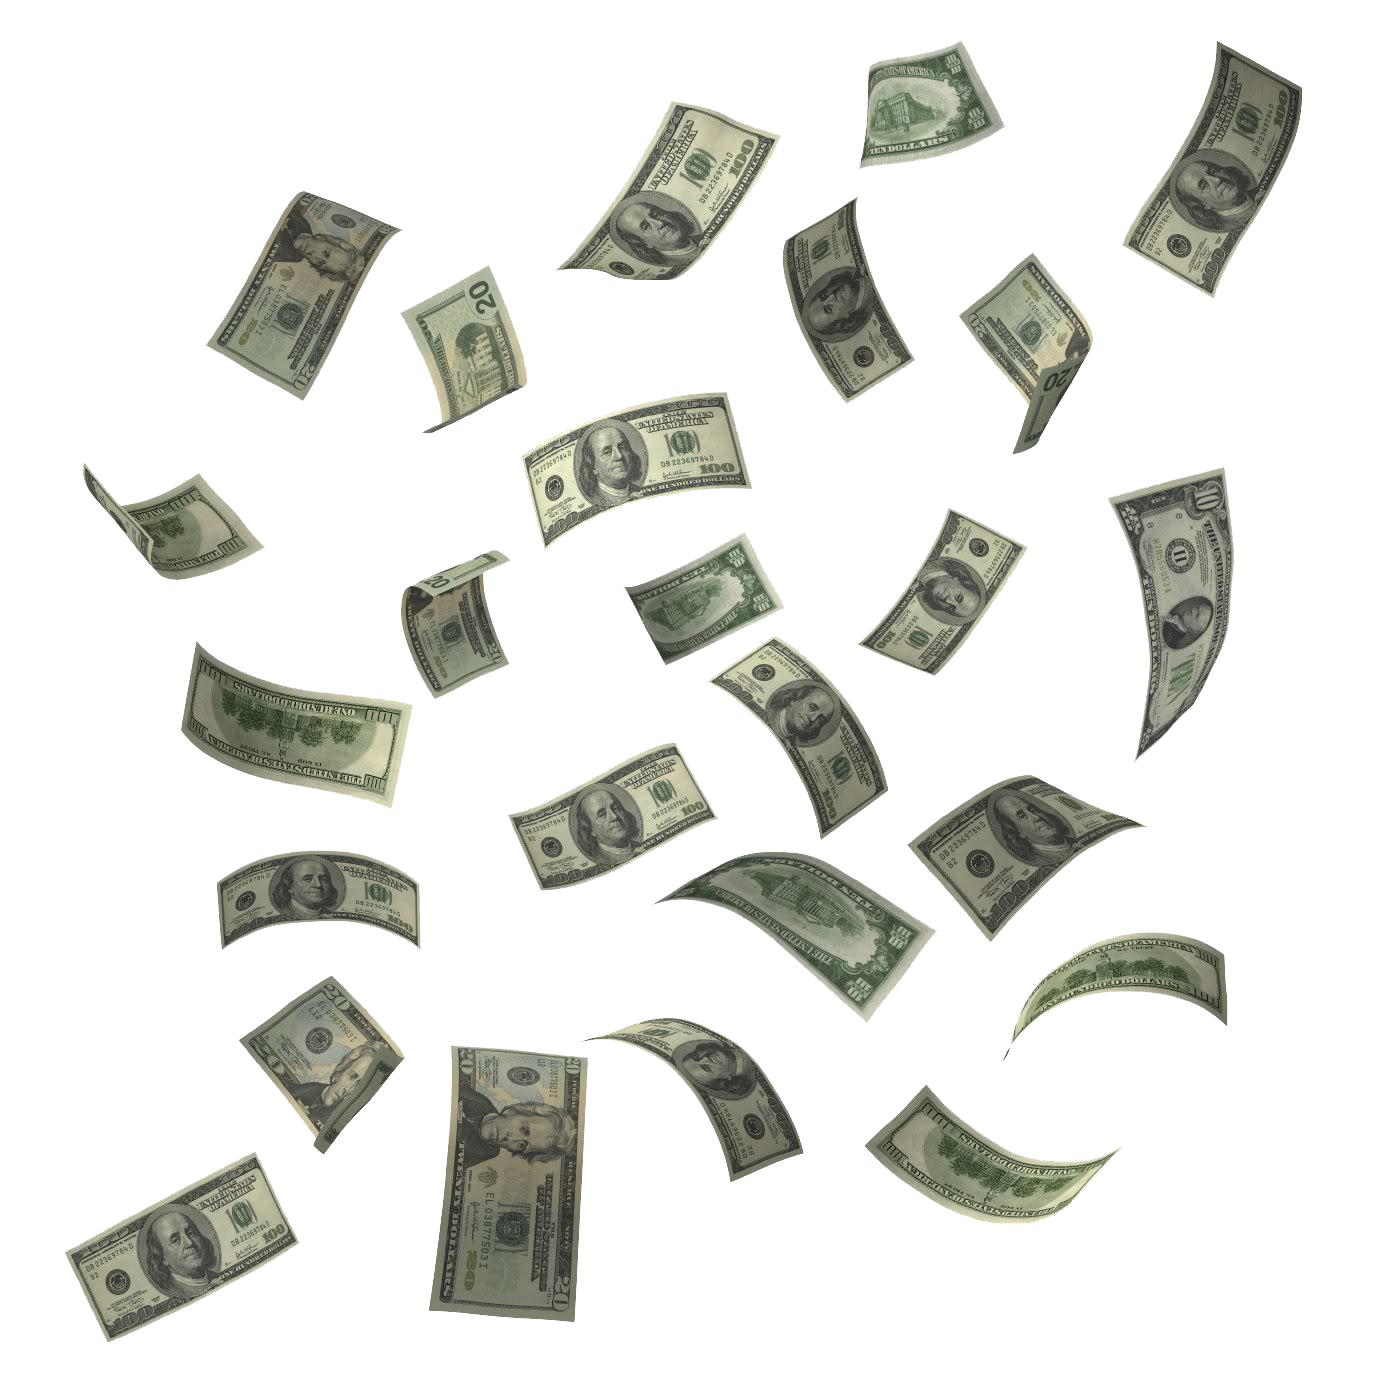 Money clipart flying stock PNG HD Money Transparent HD Money.PNG Images. | PlusPNG stock